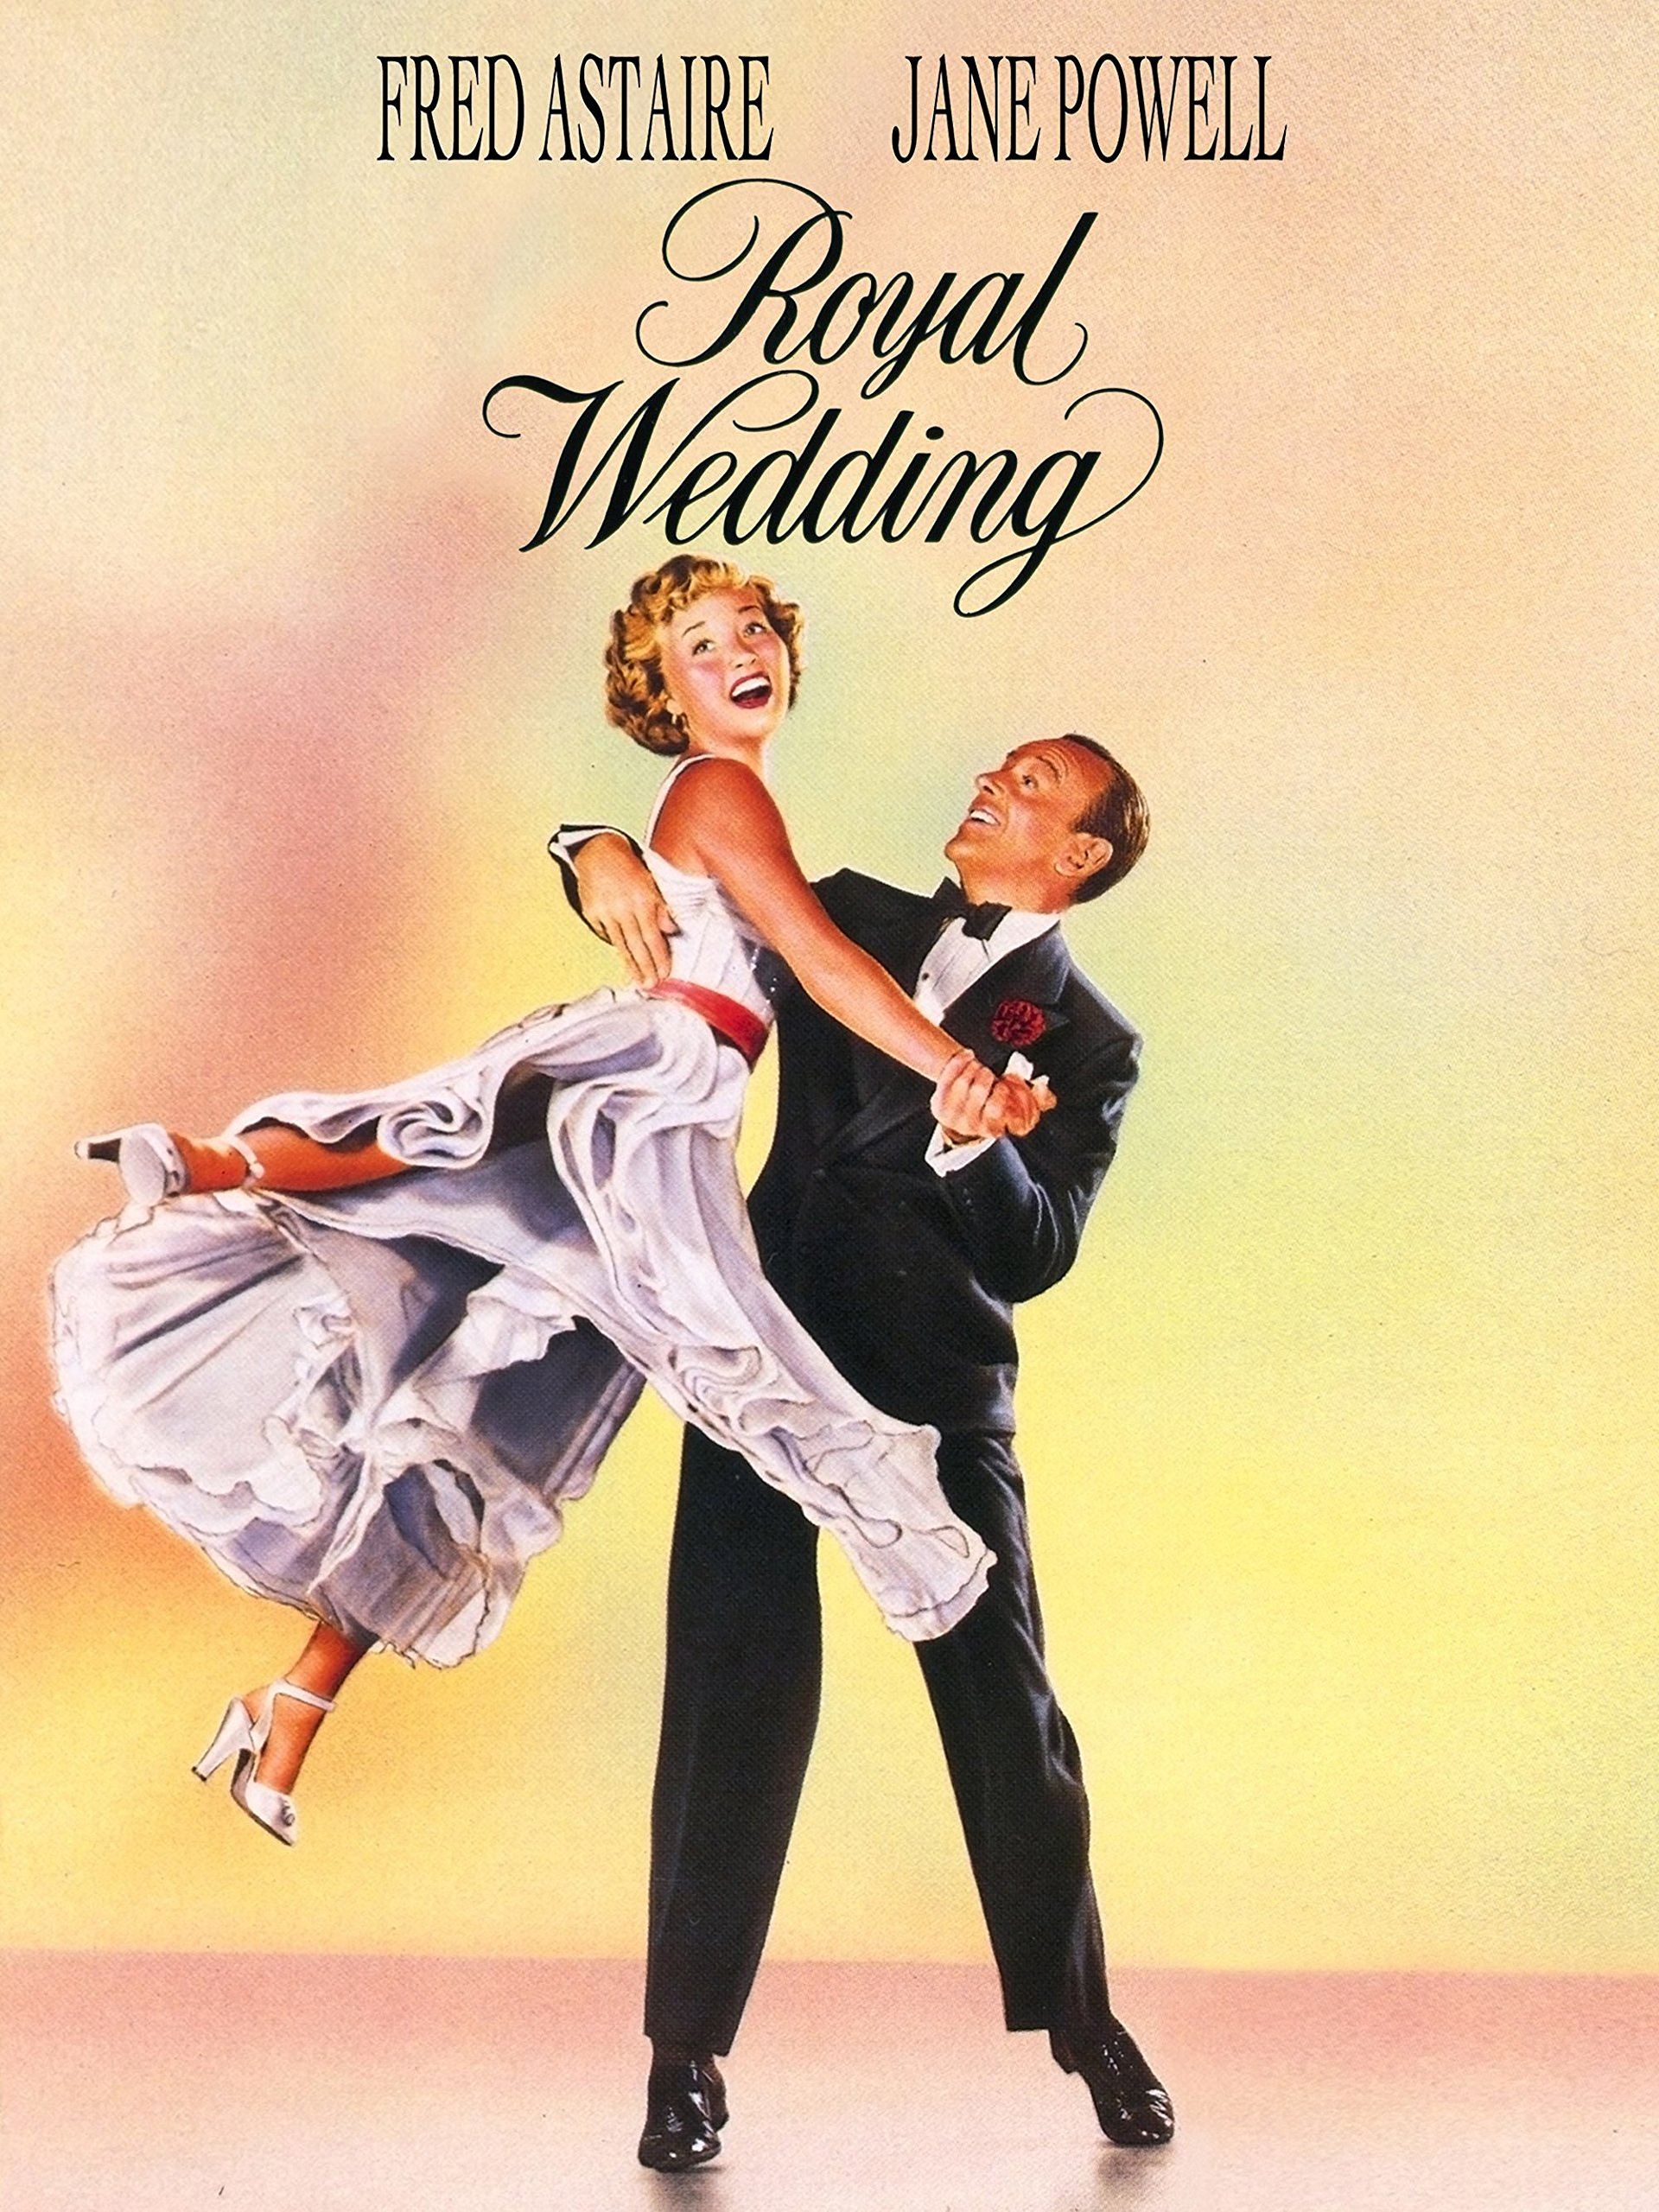 Amazon.com: The Royal Wedding: Fred Astaire, Jane Powell ...